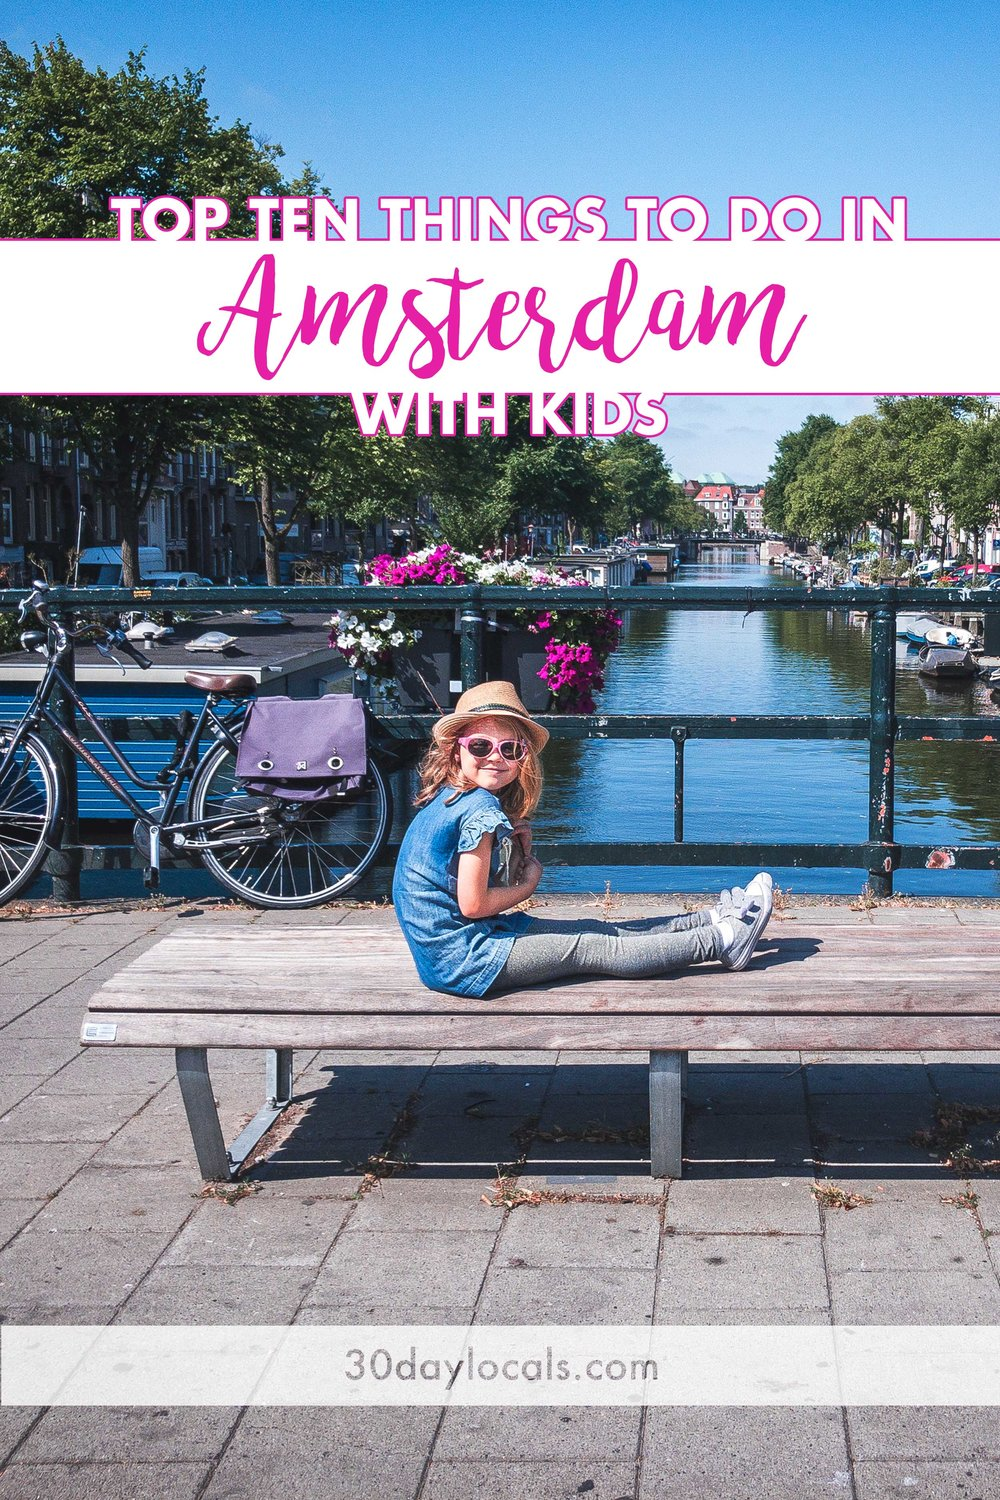 top-ten-things-to-do-in-amsterdam-with-kids.jpg